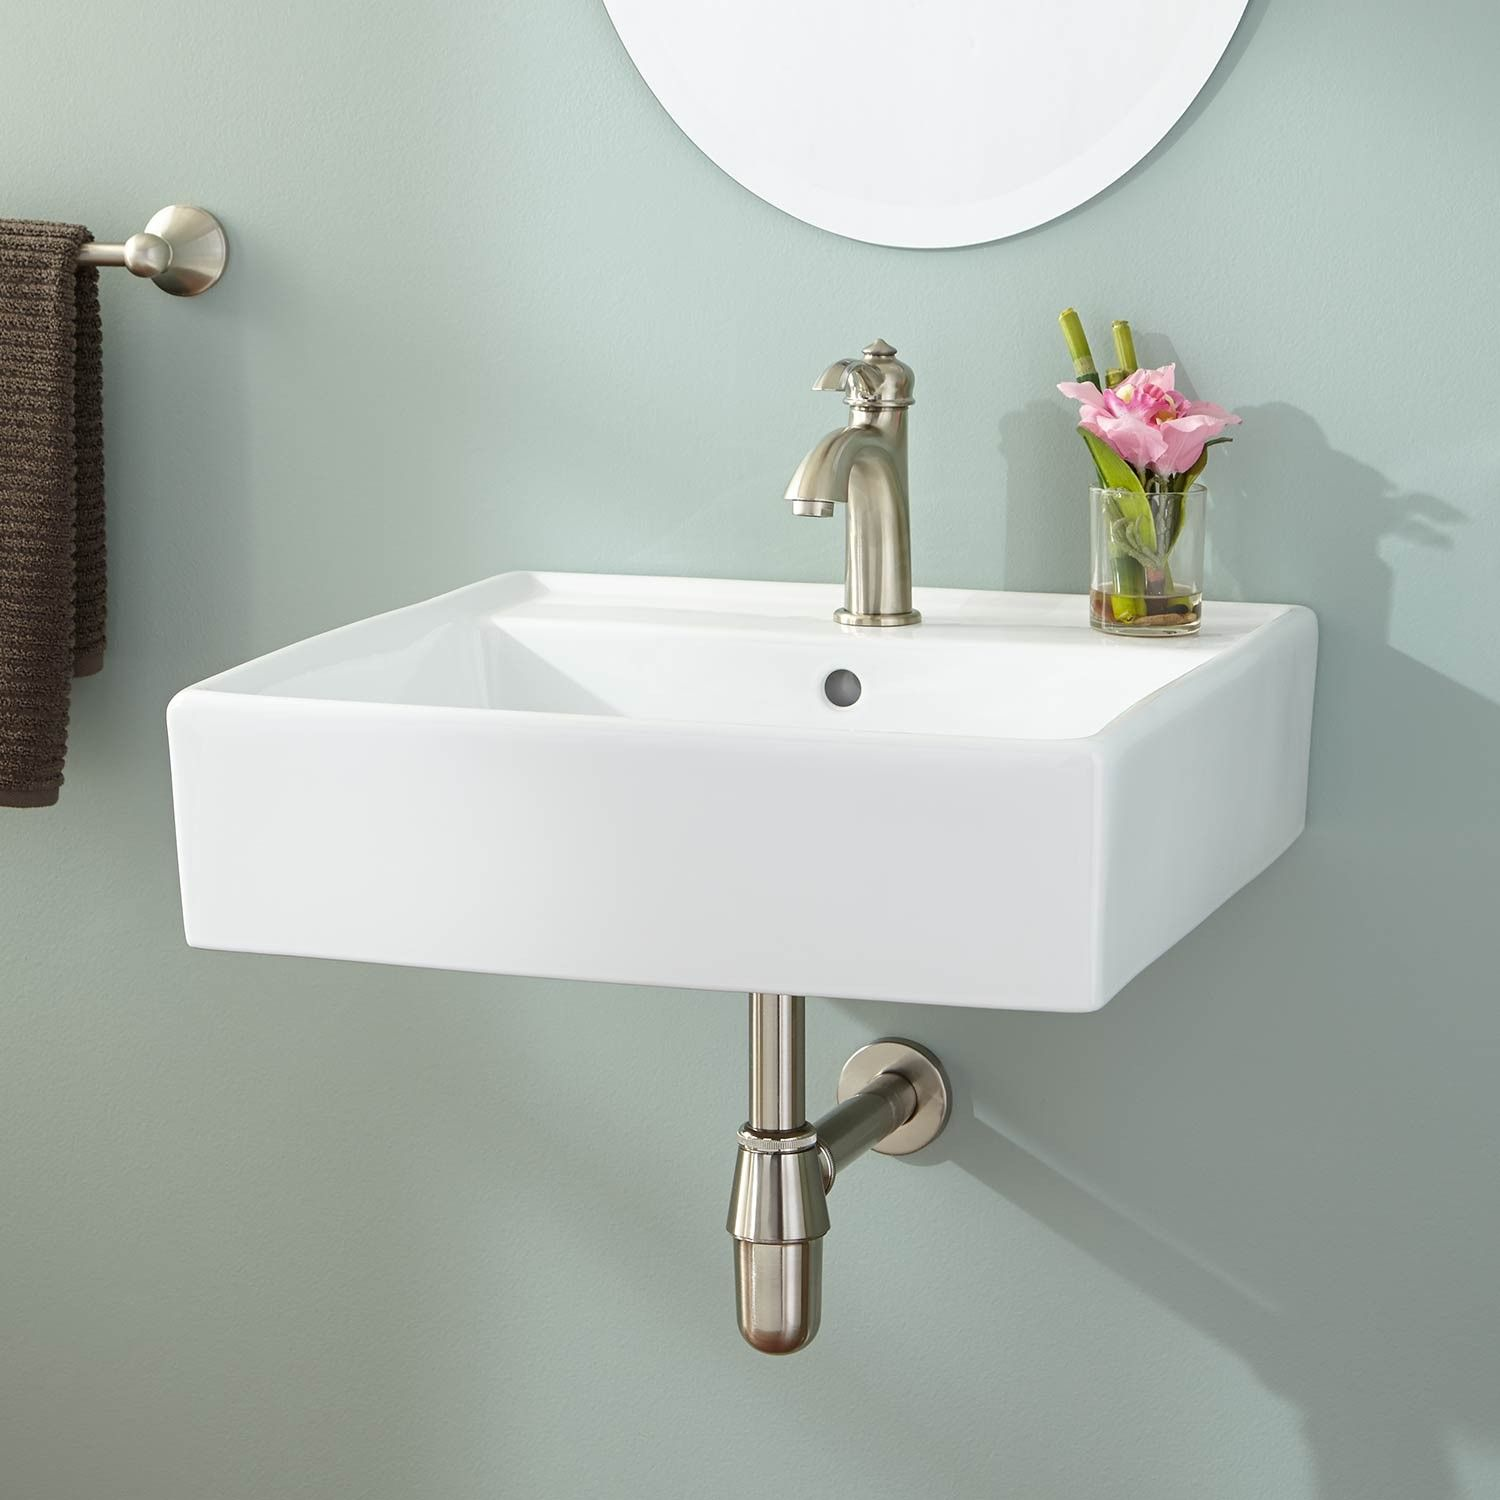 Chelsey WallMount Bathroom Sink  Wall Mount Sinks